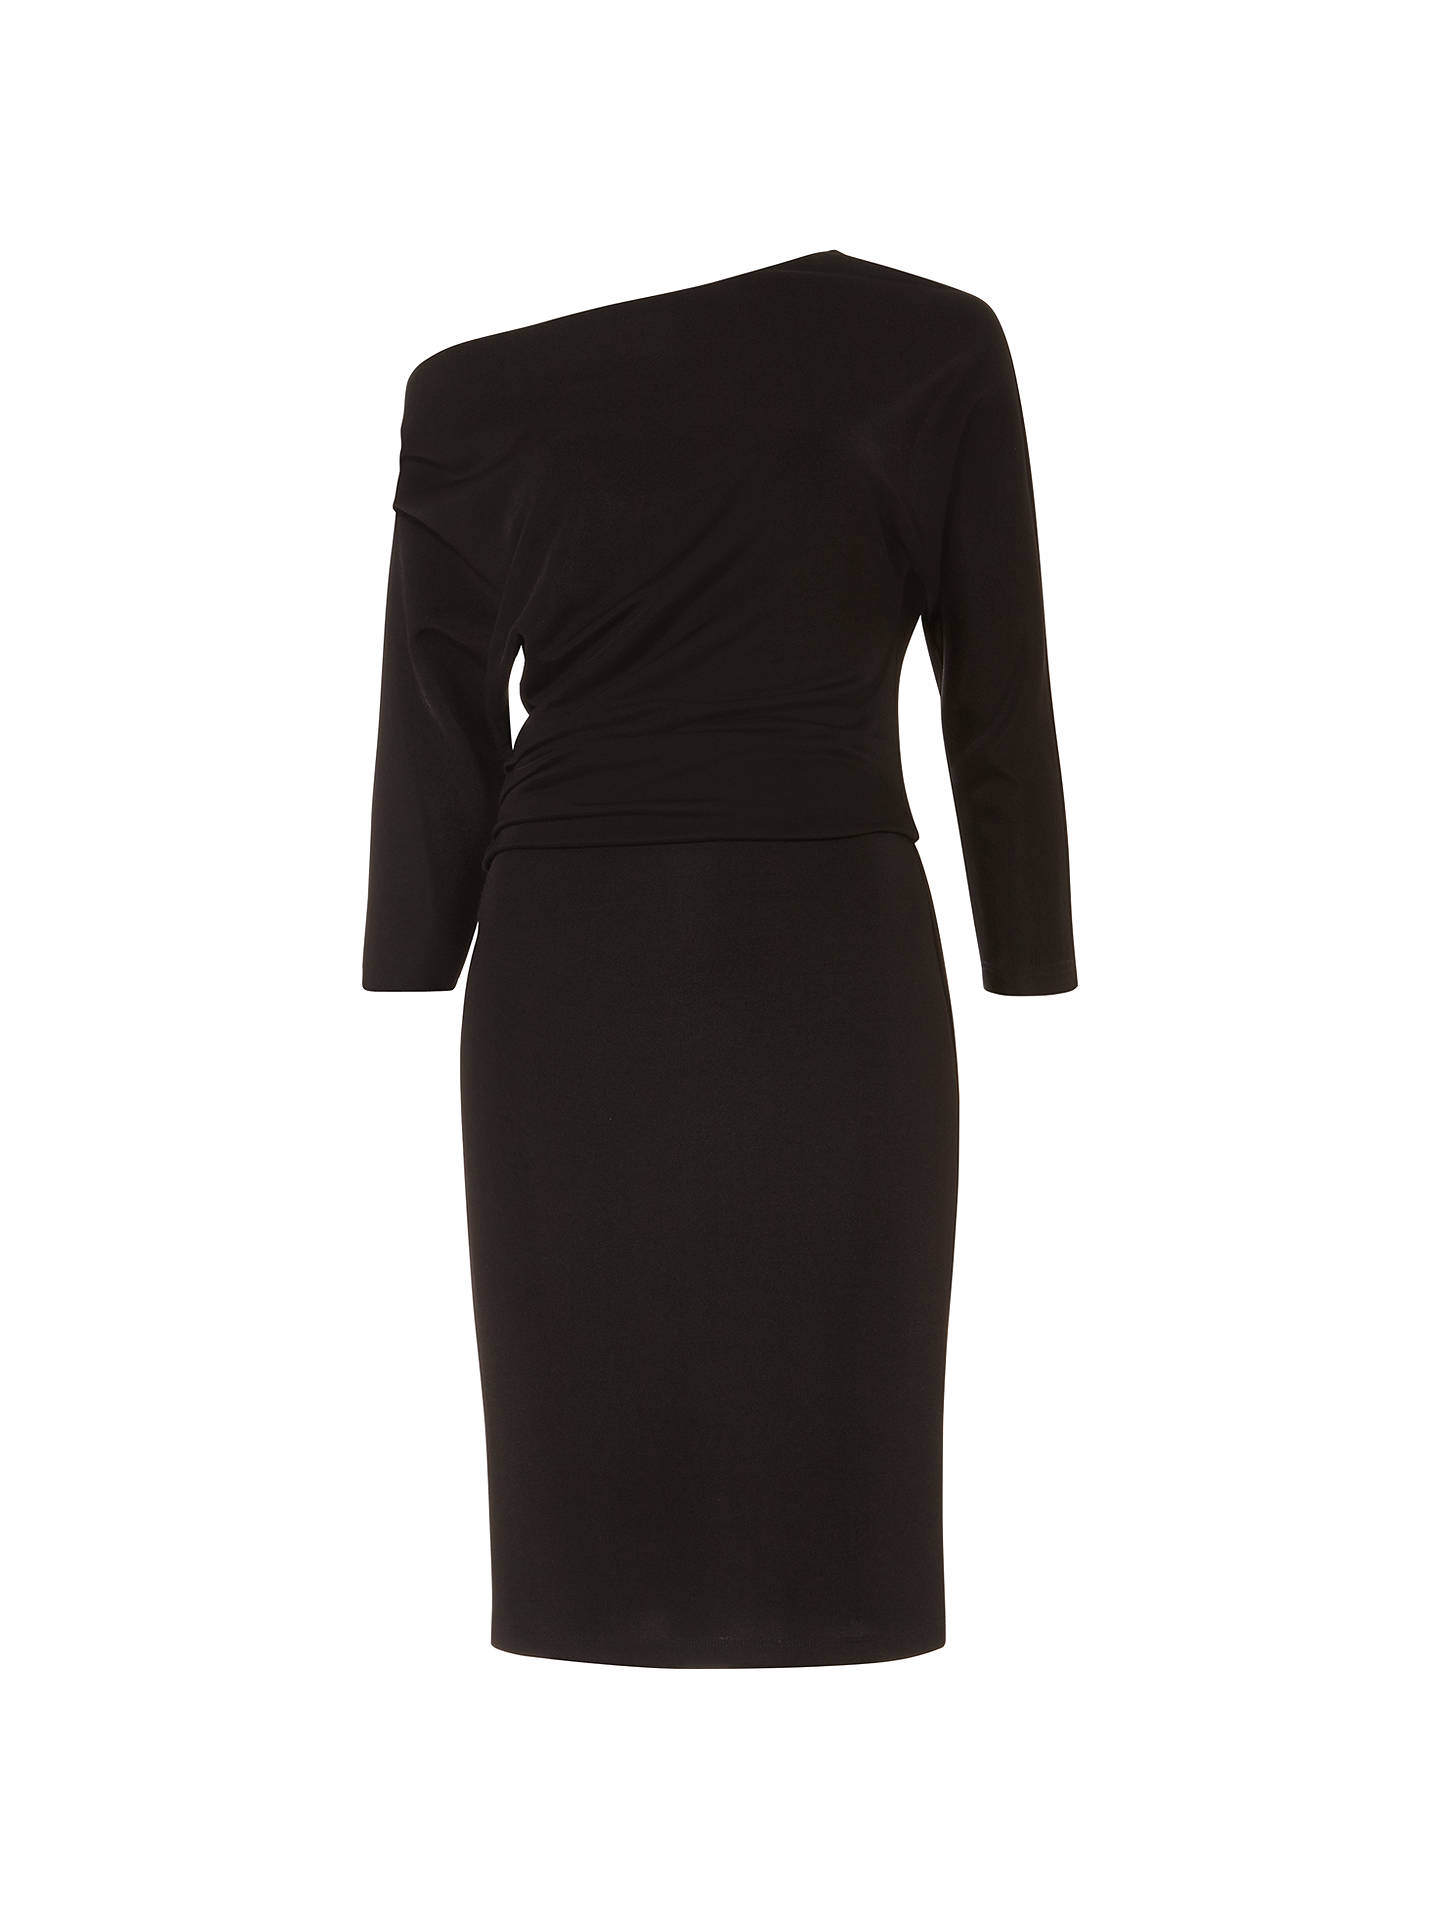 BuyDamsel in a Dress Willow Asymmetric Neckline Pencil Dress, Black, 8 Online at johnlewis.com